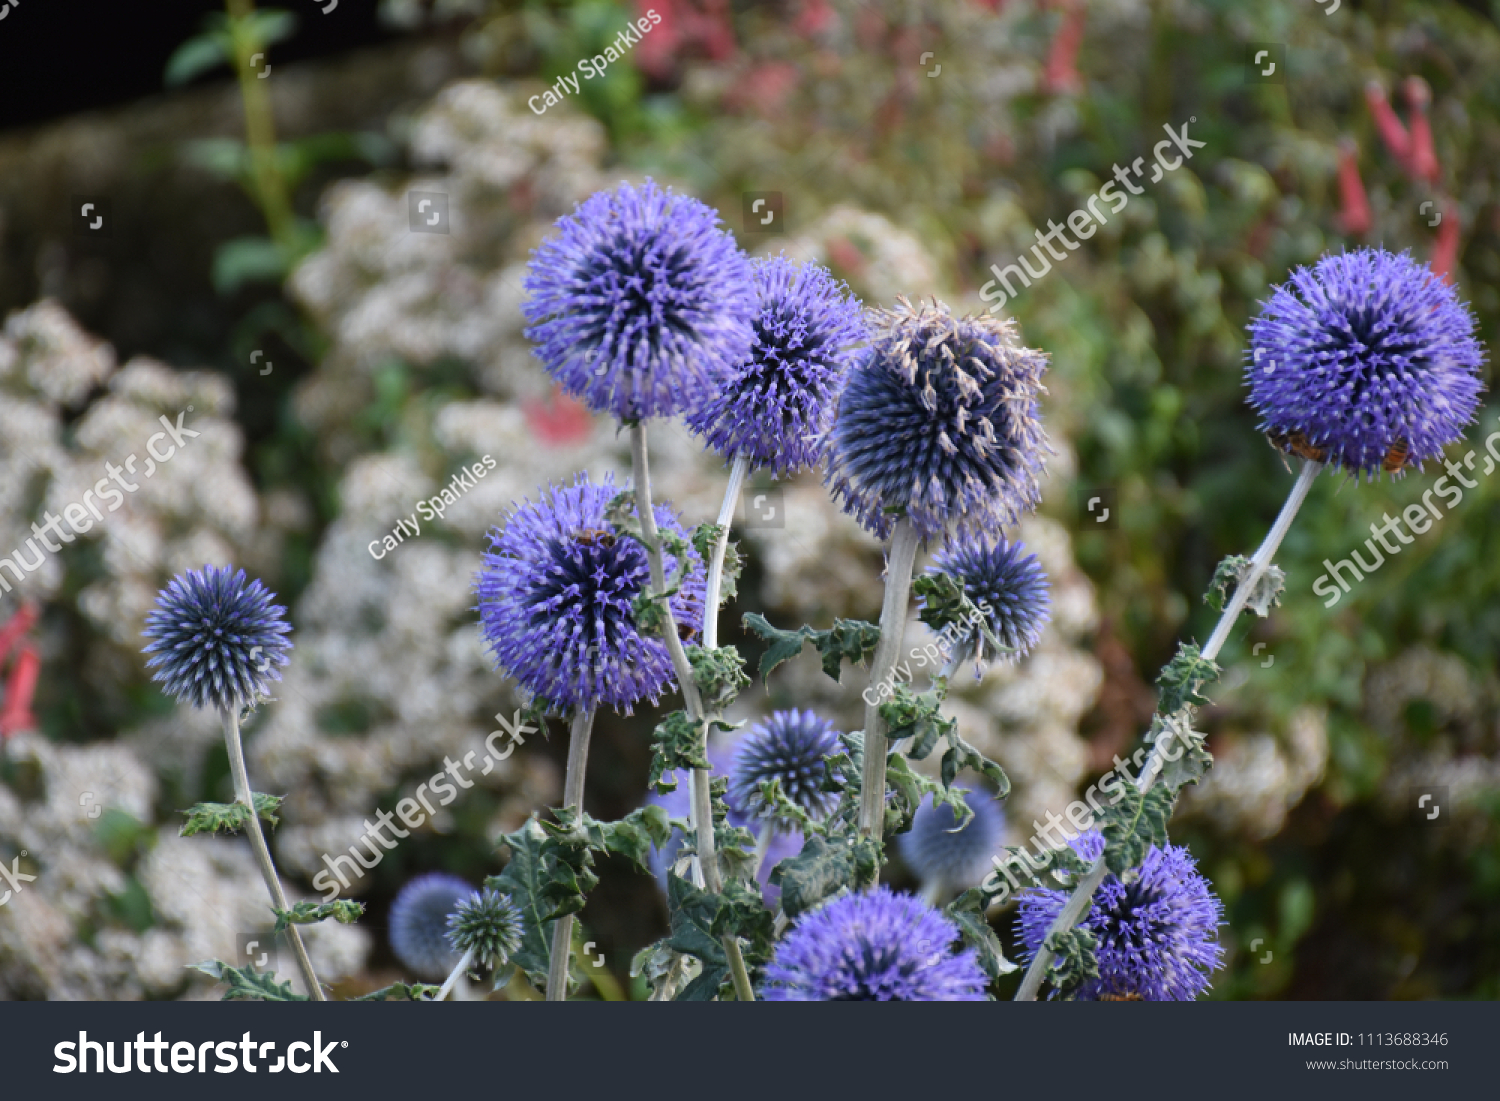 Some Tall Spikey Purple Flowers Stock Photo Edit Now 1113688346